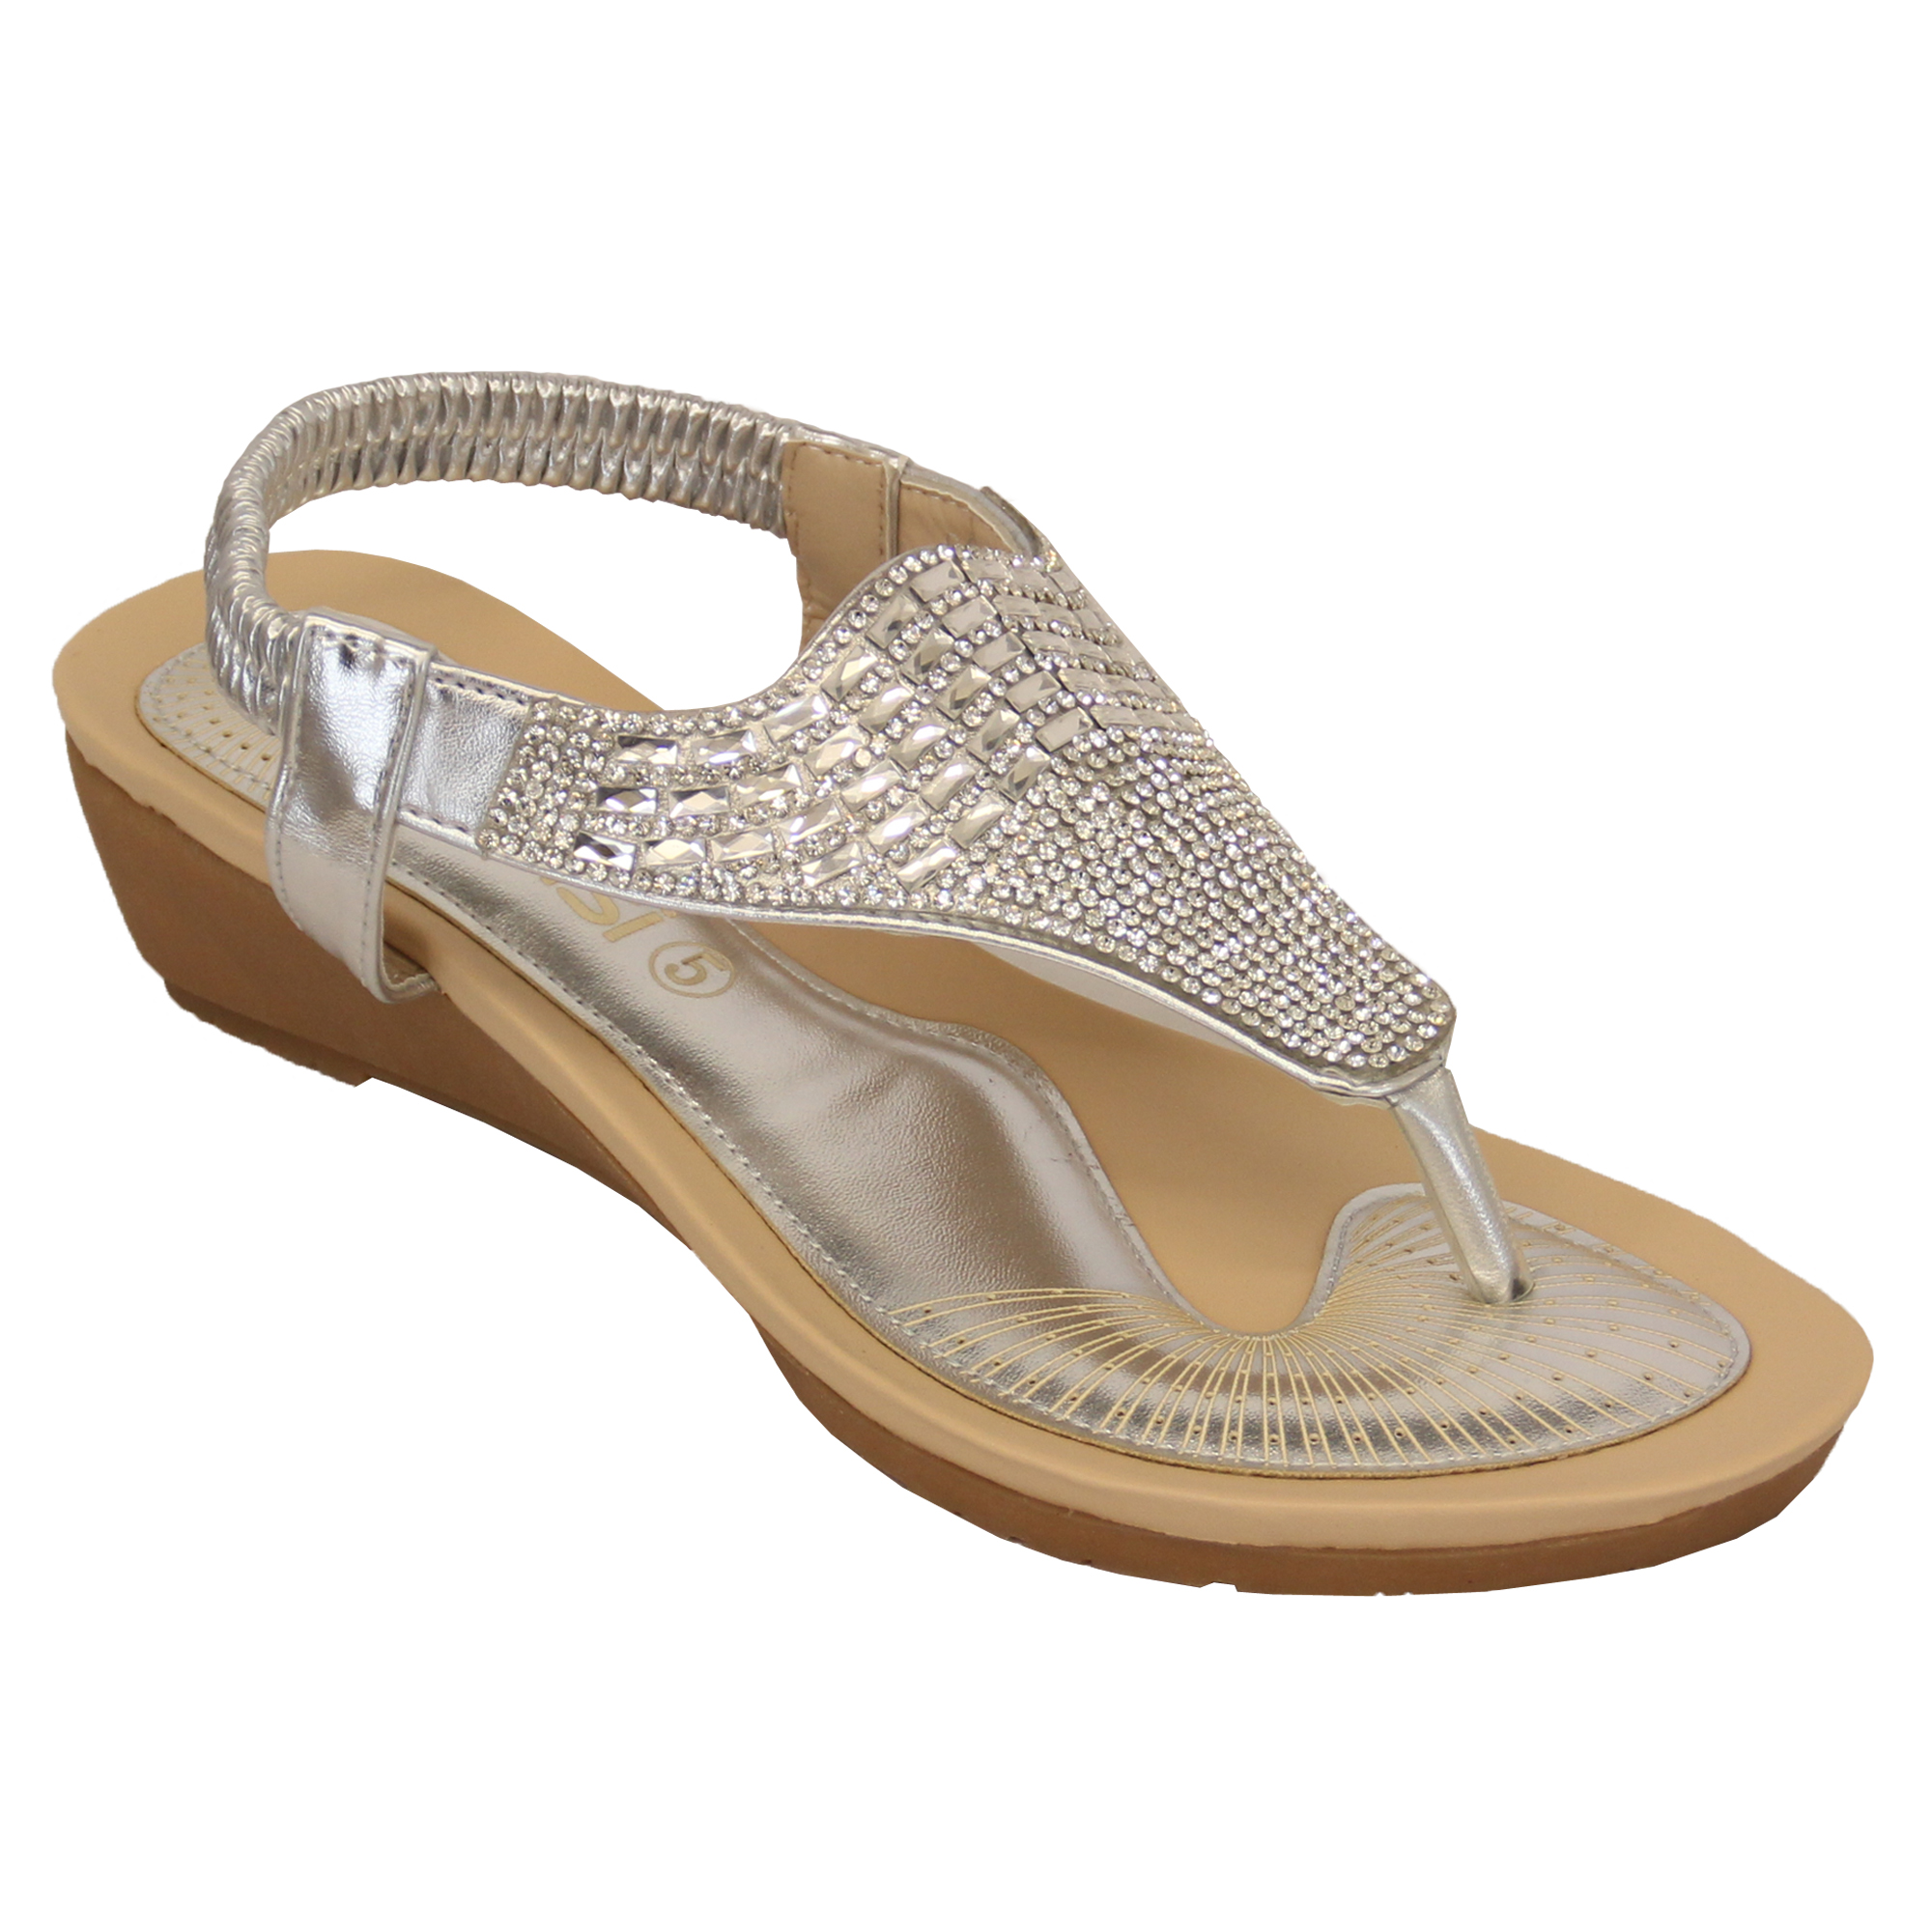 Ladies-Sandals-Kelsi-Womens-Diamante-Slip-On-Toe-Post-Shoes-Casual-Fashion-New thumbnail 24